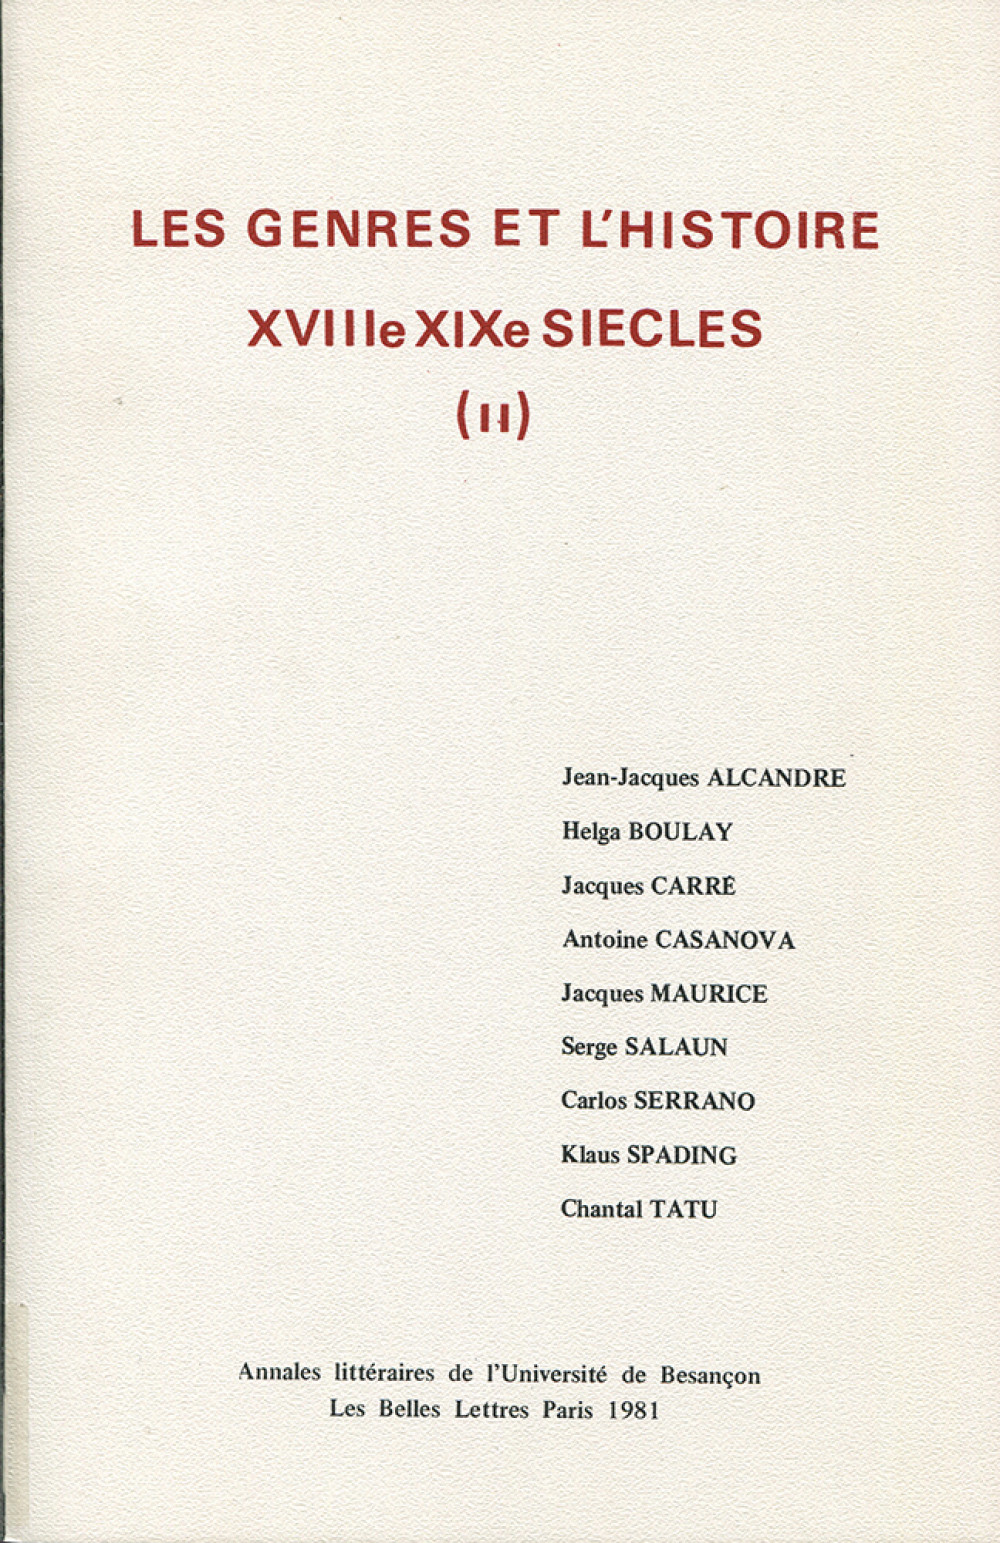 "Les genres et l'histoire <span style=""font-variant: small-caps"">XVIII</span><sup>e</sup>-<span style=""font-variant: small-caps"">XIX</span><sup>e</sup> siècles (II)"